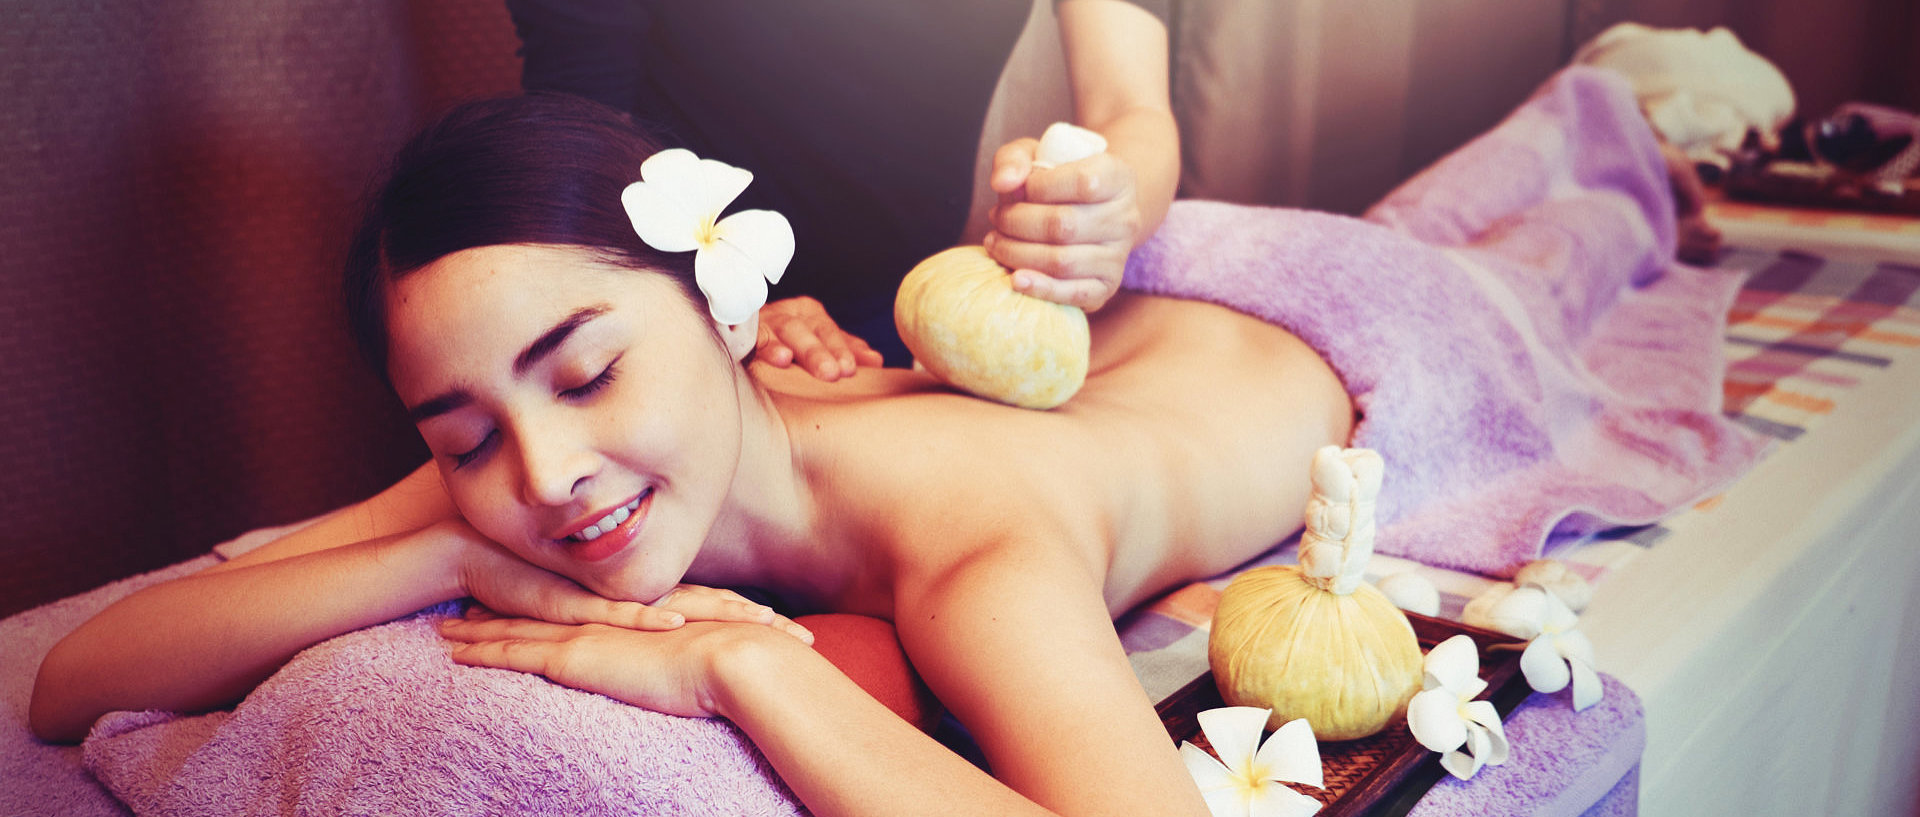 lady being massaged with crushed lemons in a very thin cloth